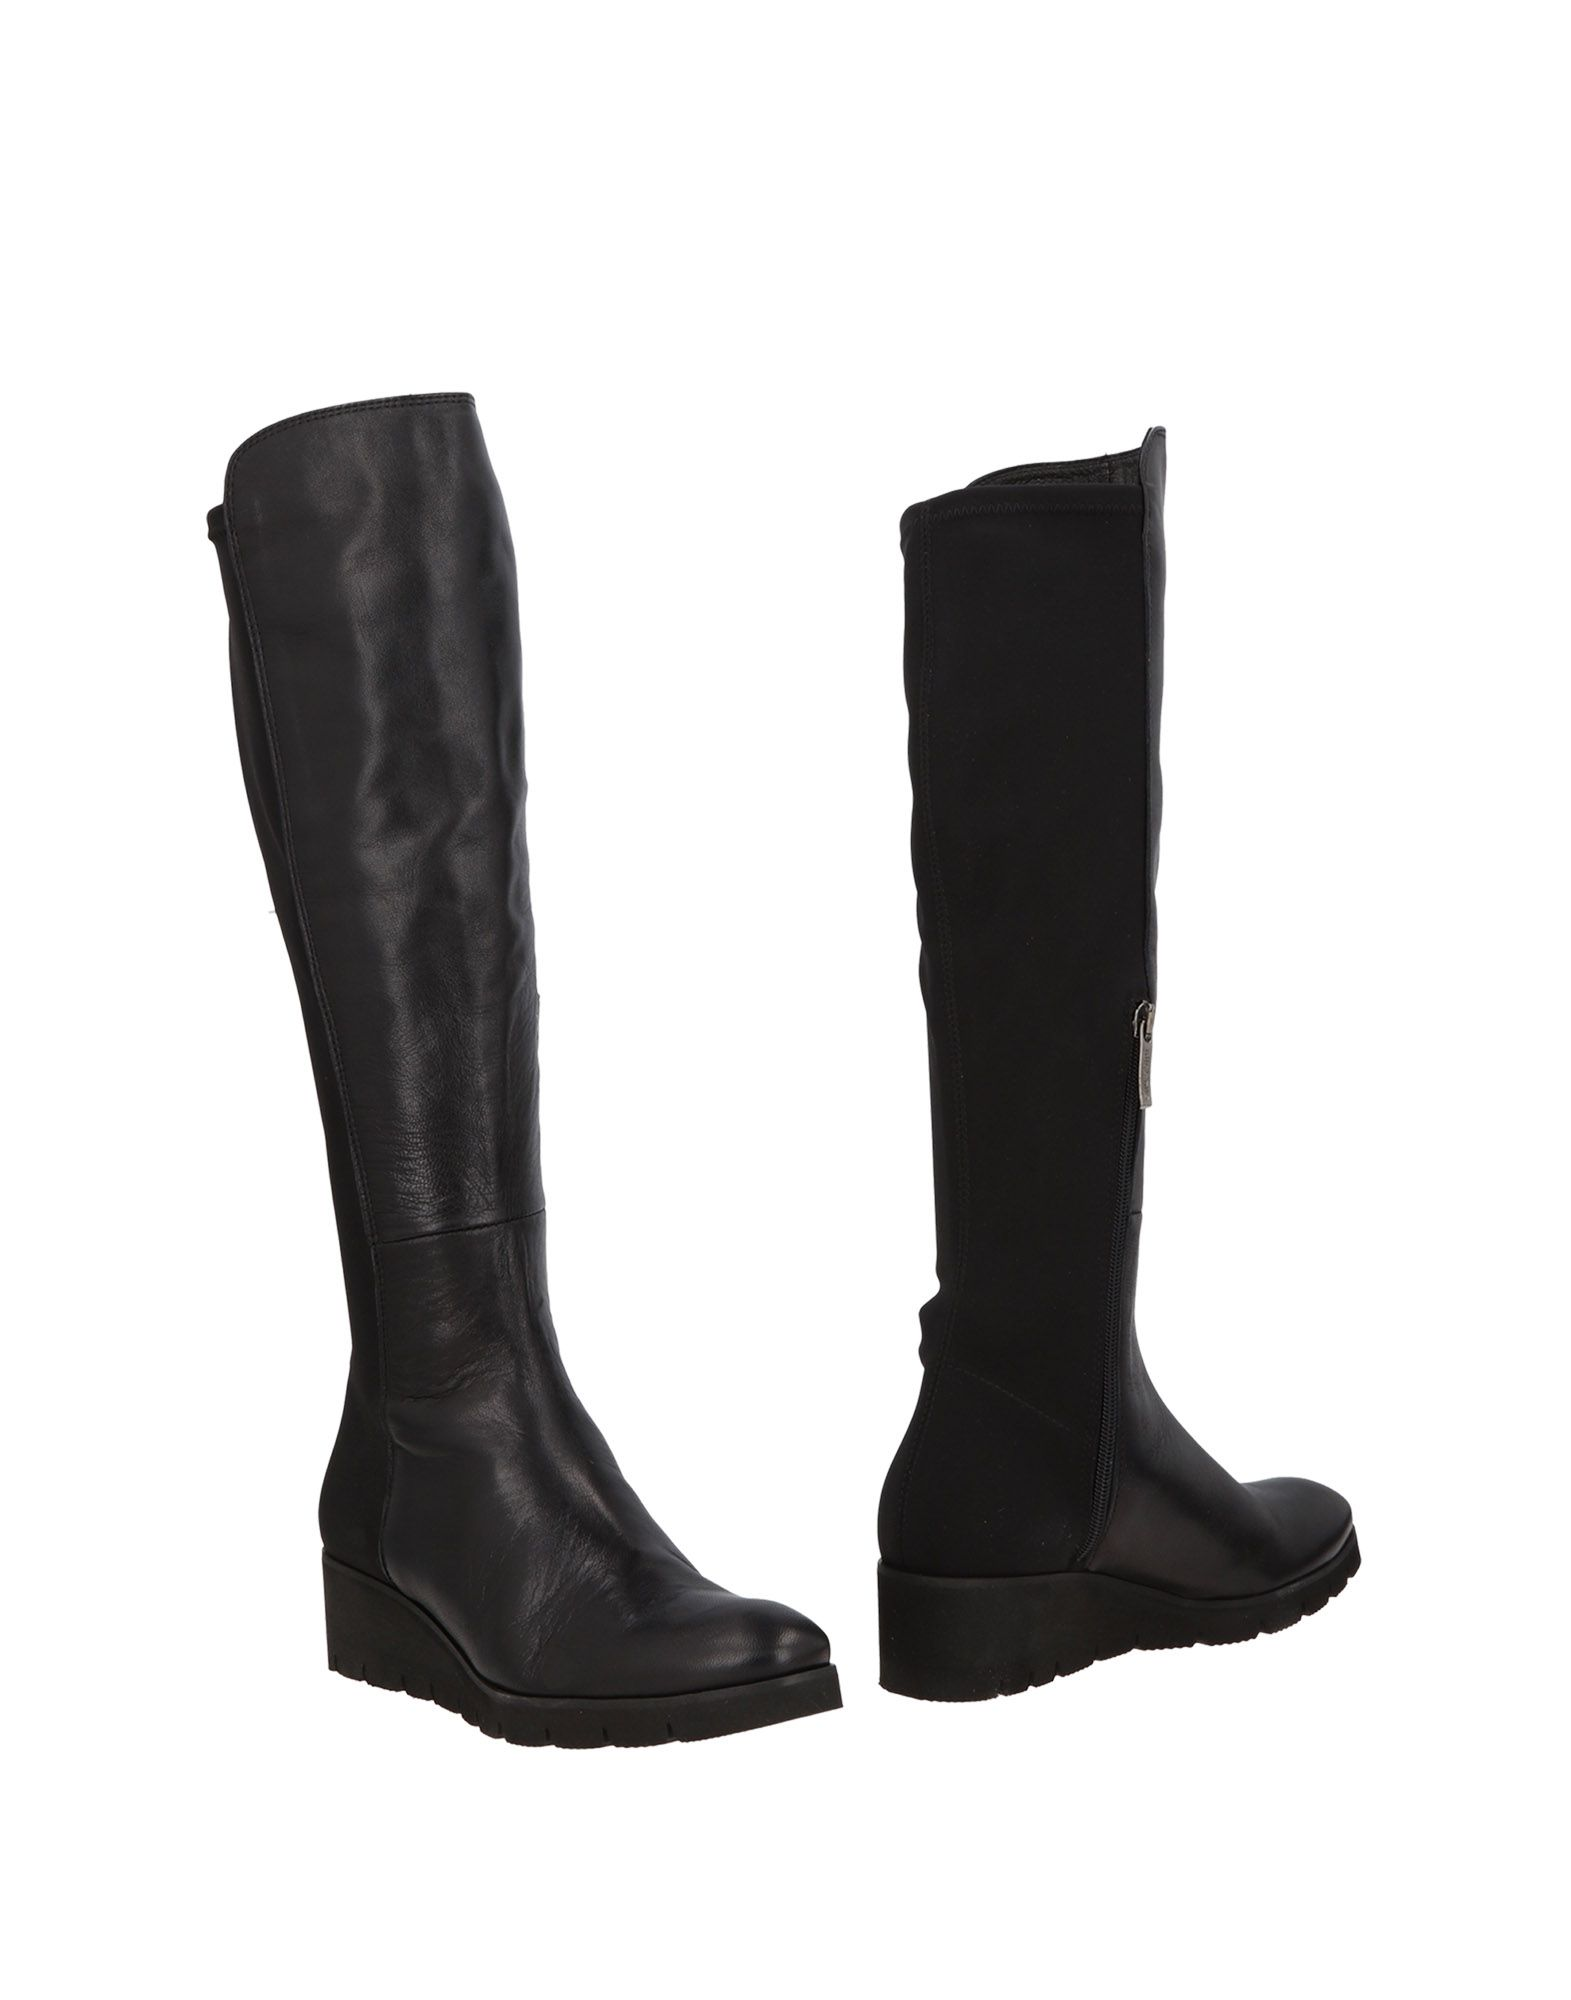 Nila & Nila Boots - Women Nila on & Nila Boots online on Nila  Australia - 11474819PE 5be9f3